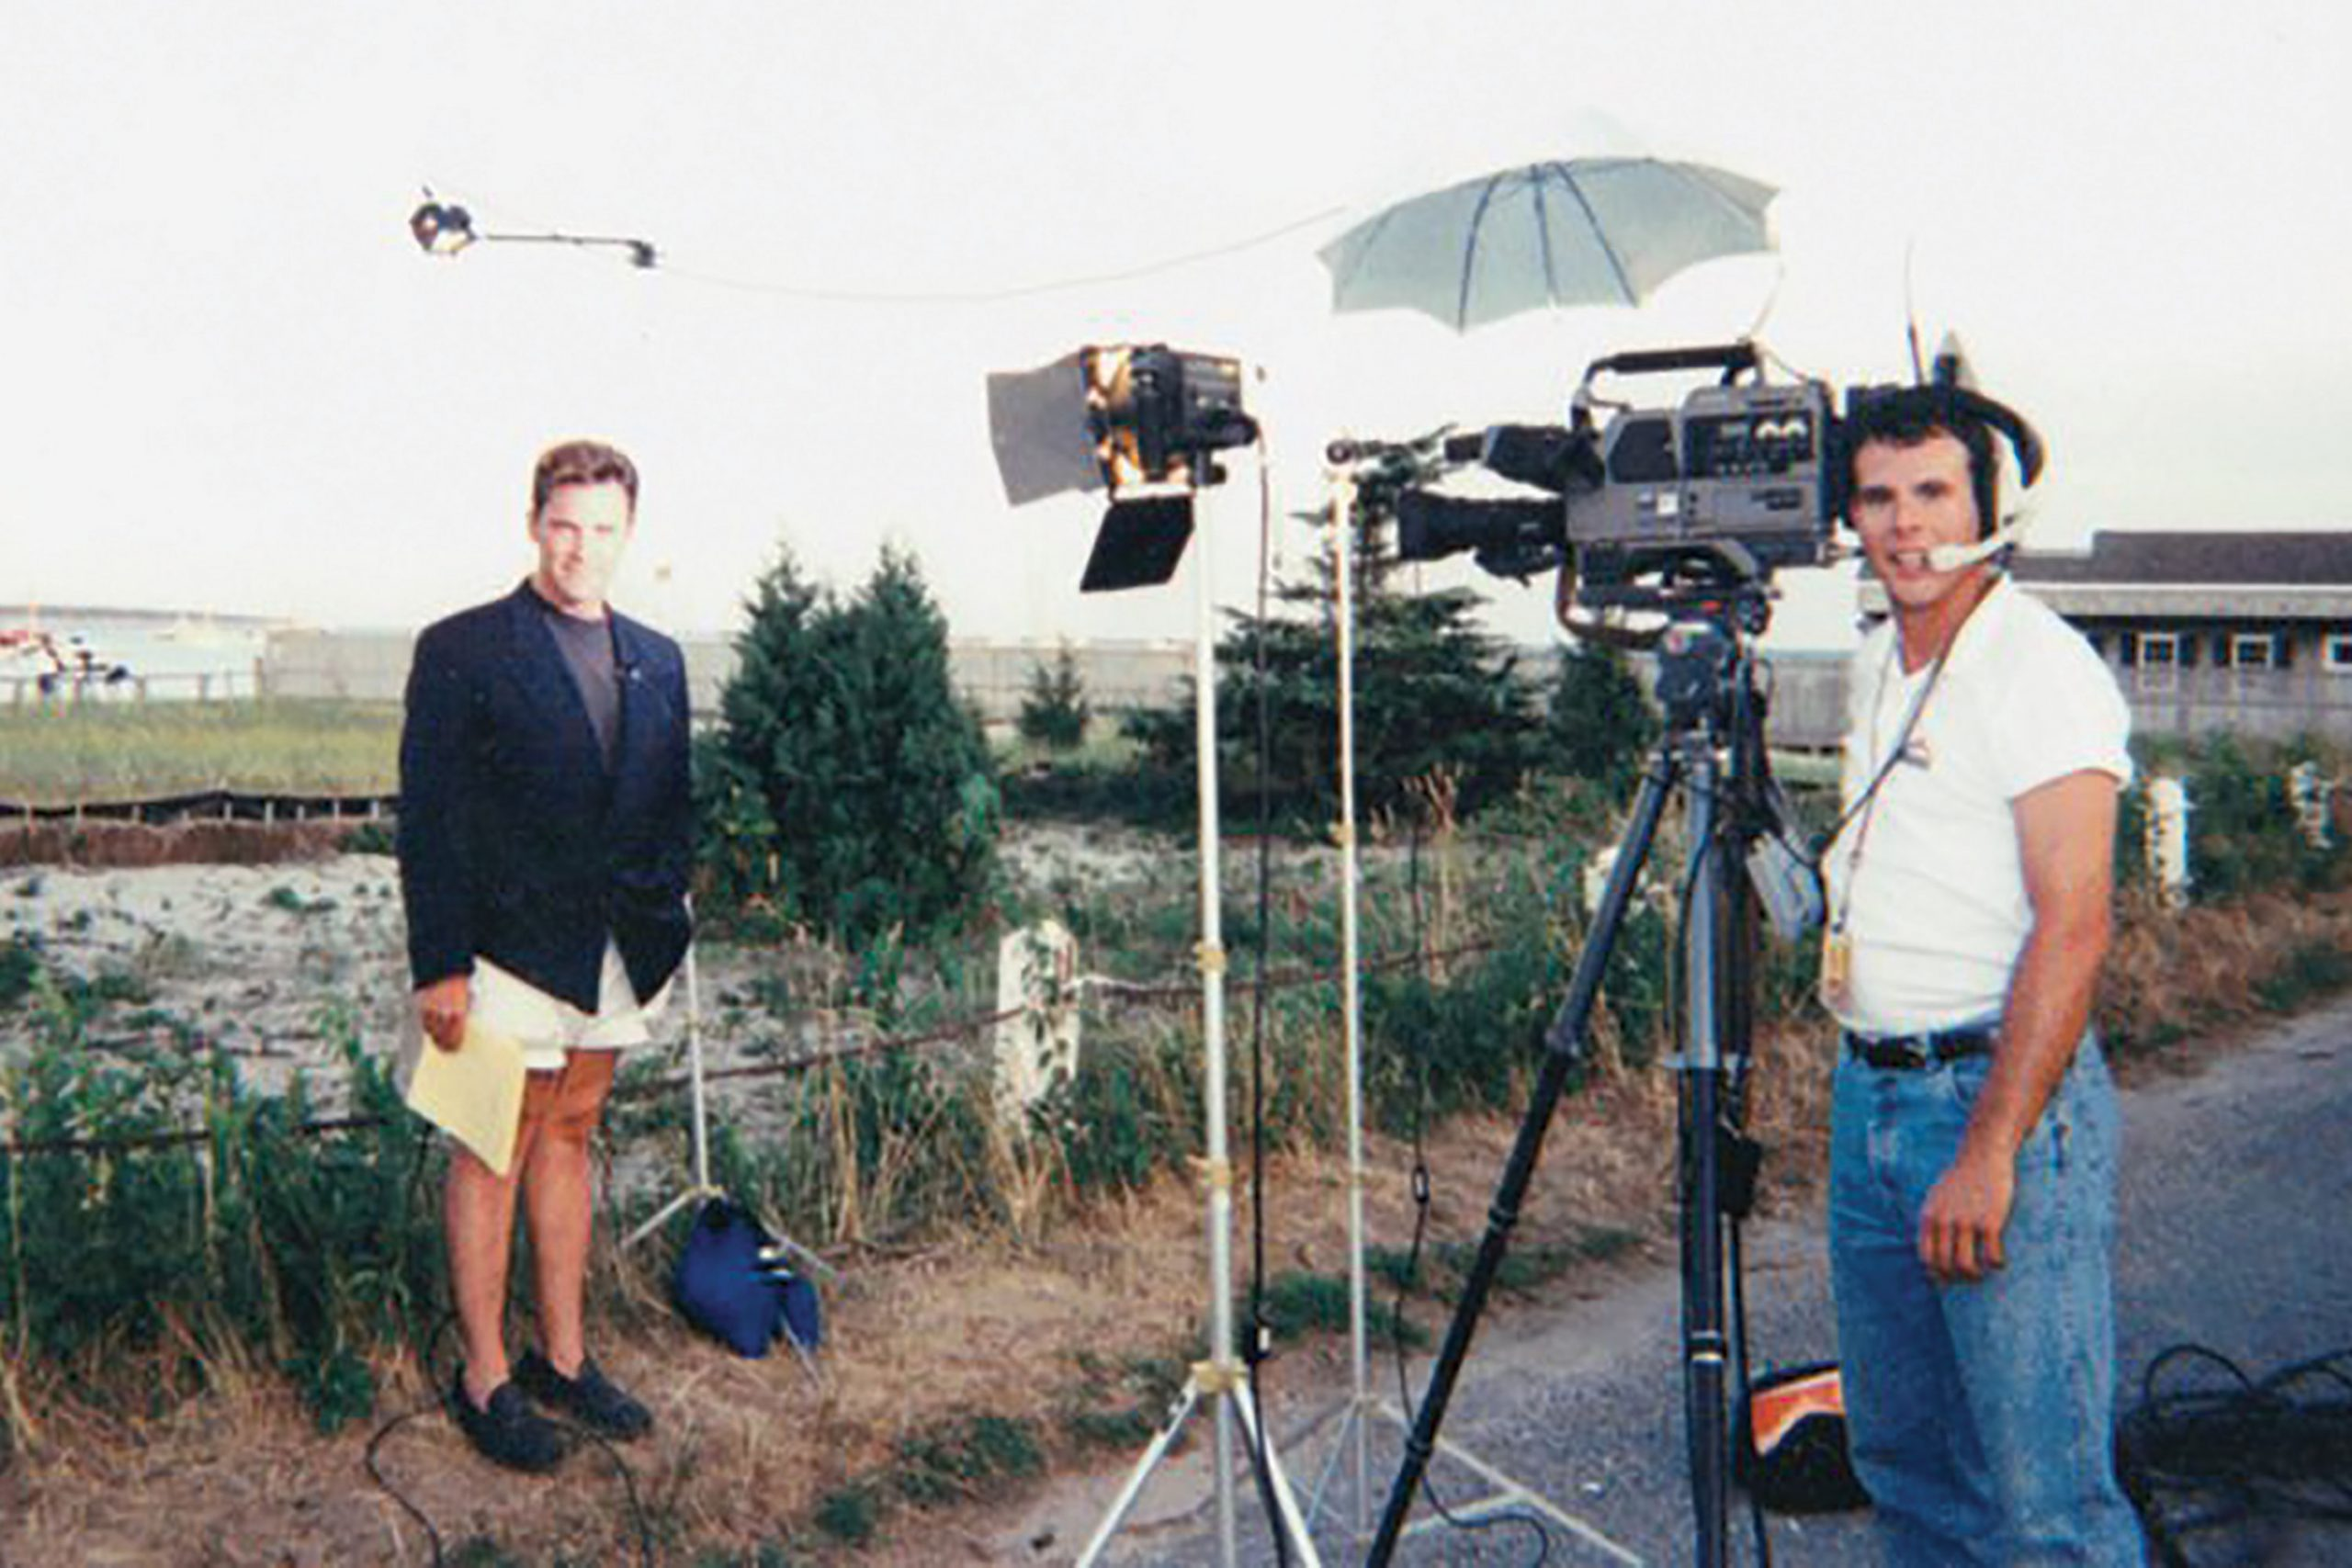 in Cape Cod covering the ill-fated search for the missing airplane of JFK Jr.; Photo courtesy Mike Watkiss